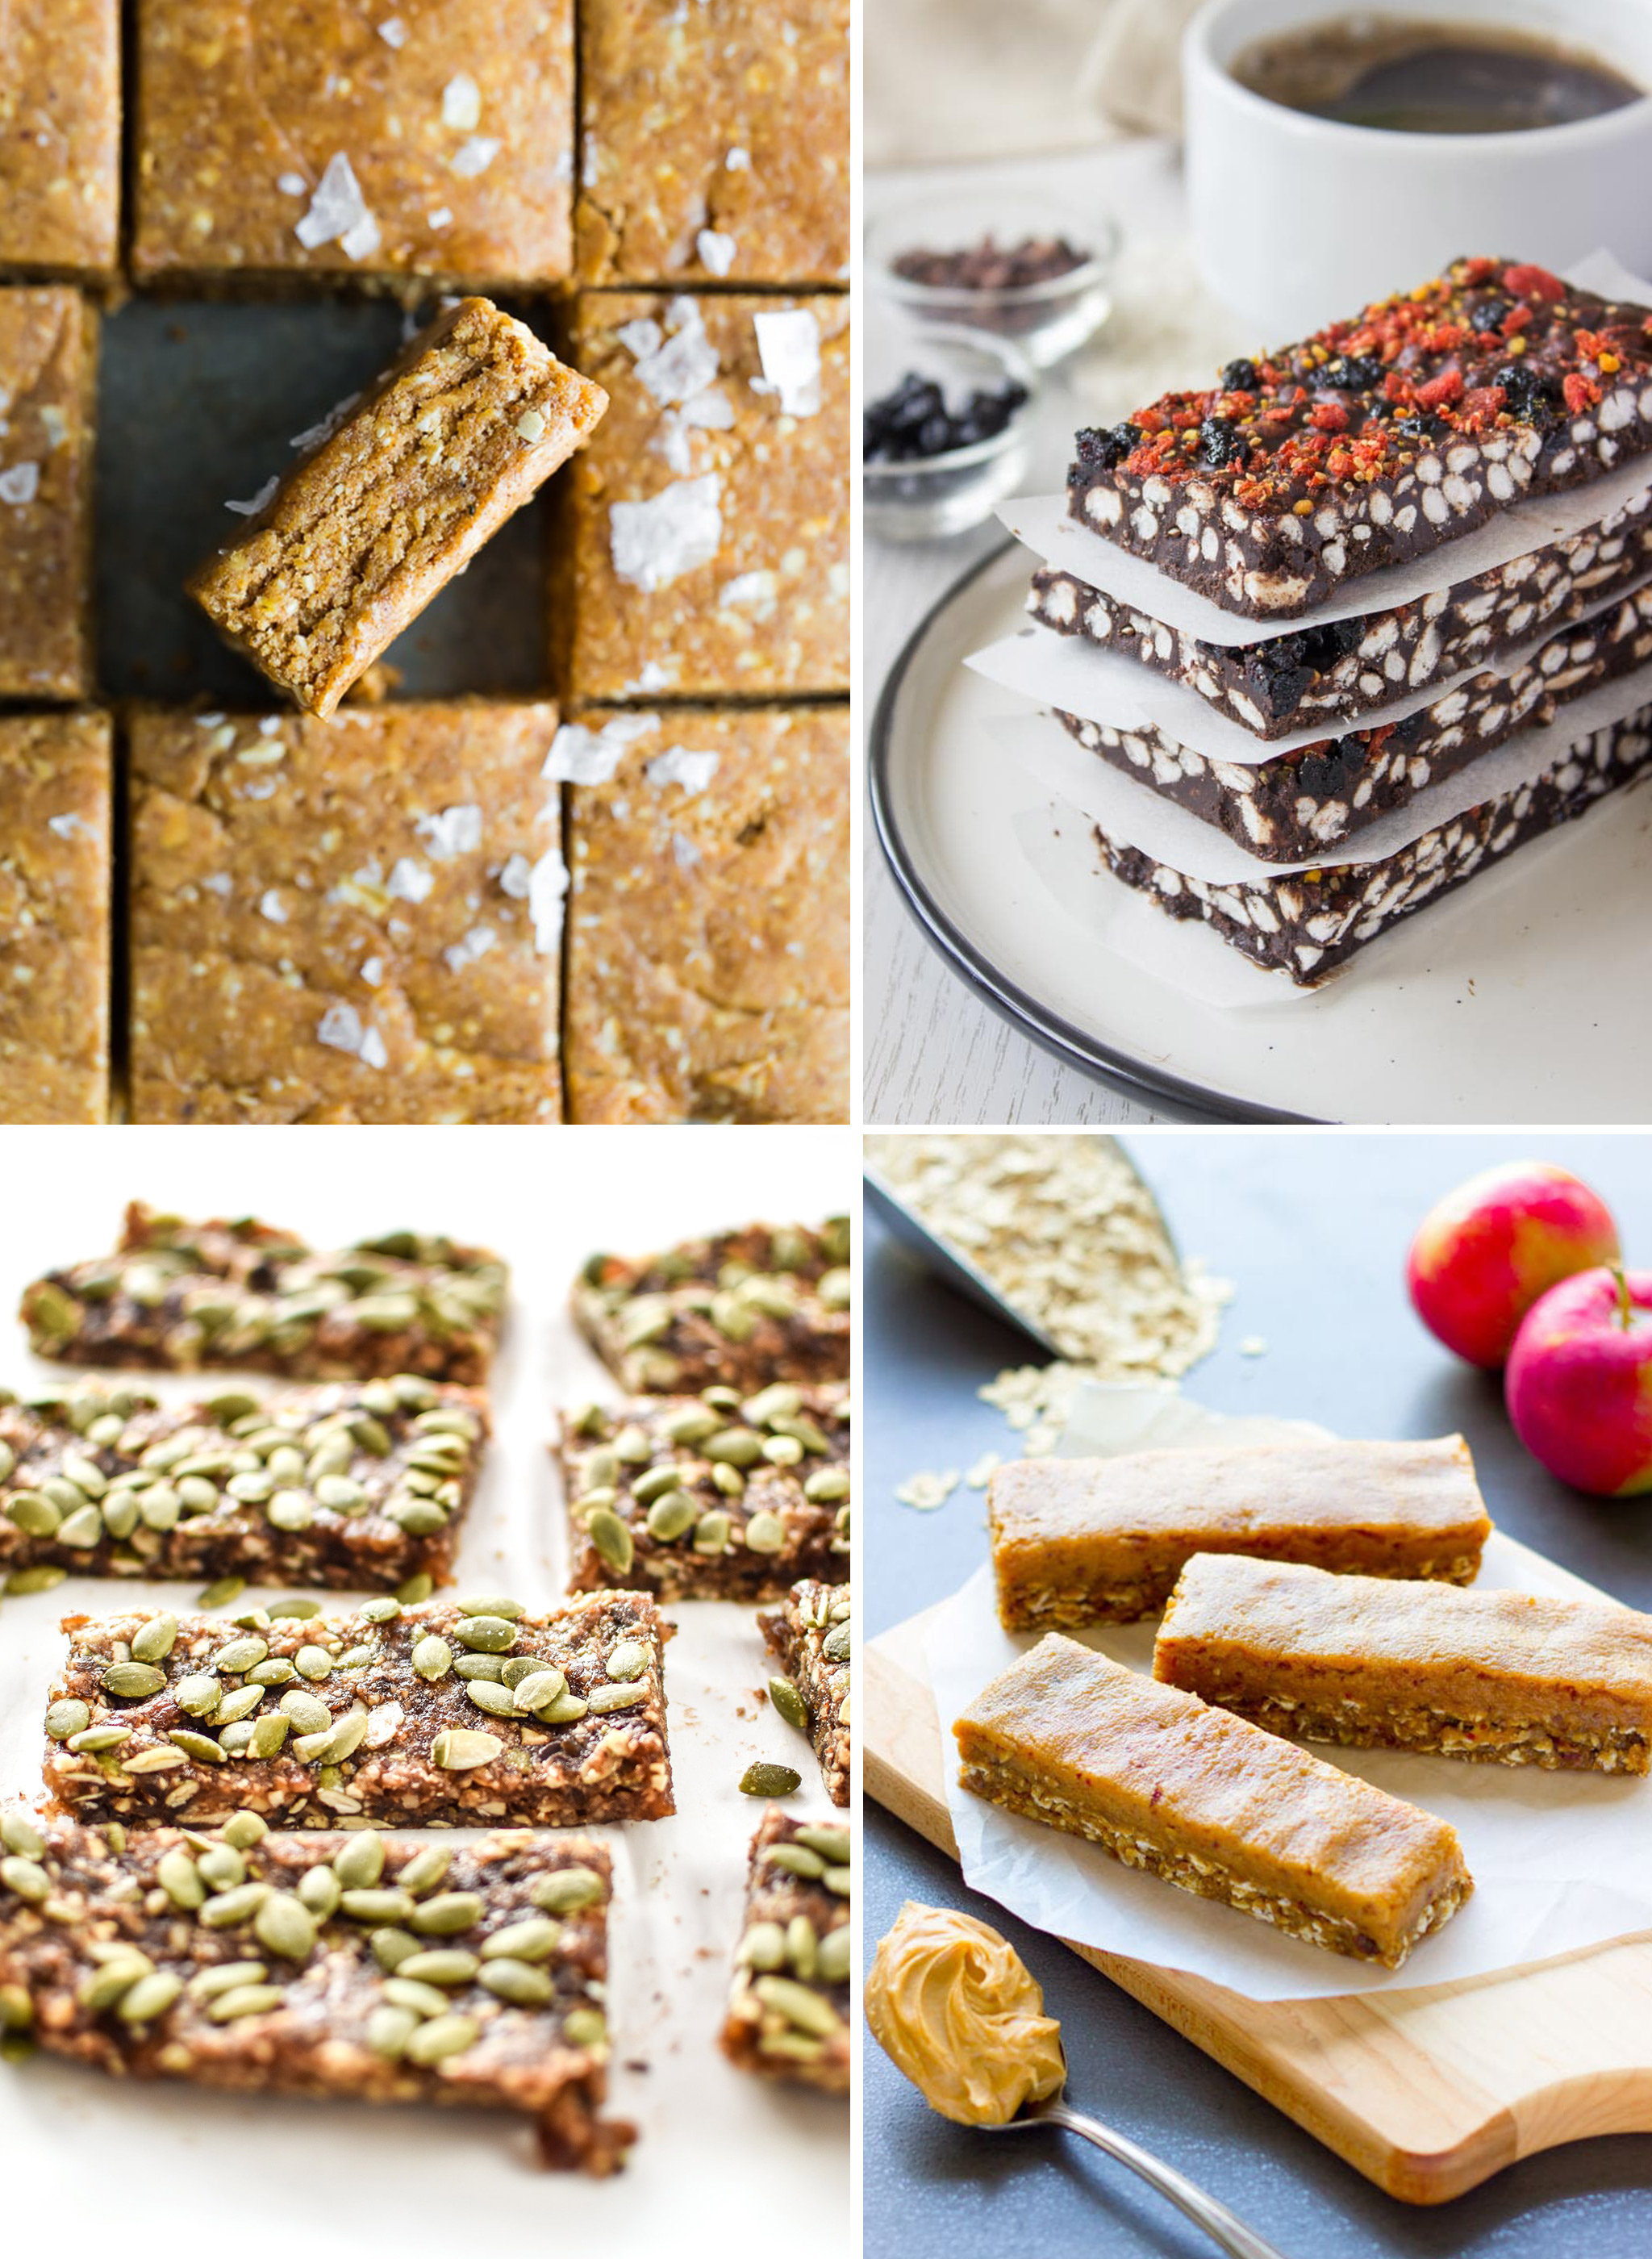 4 different kinds of no bake healthy snack bar recipes you can meal prep